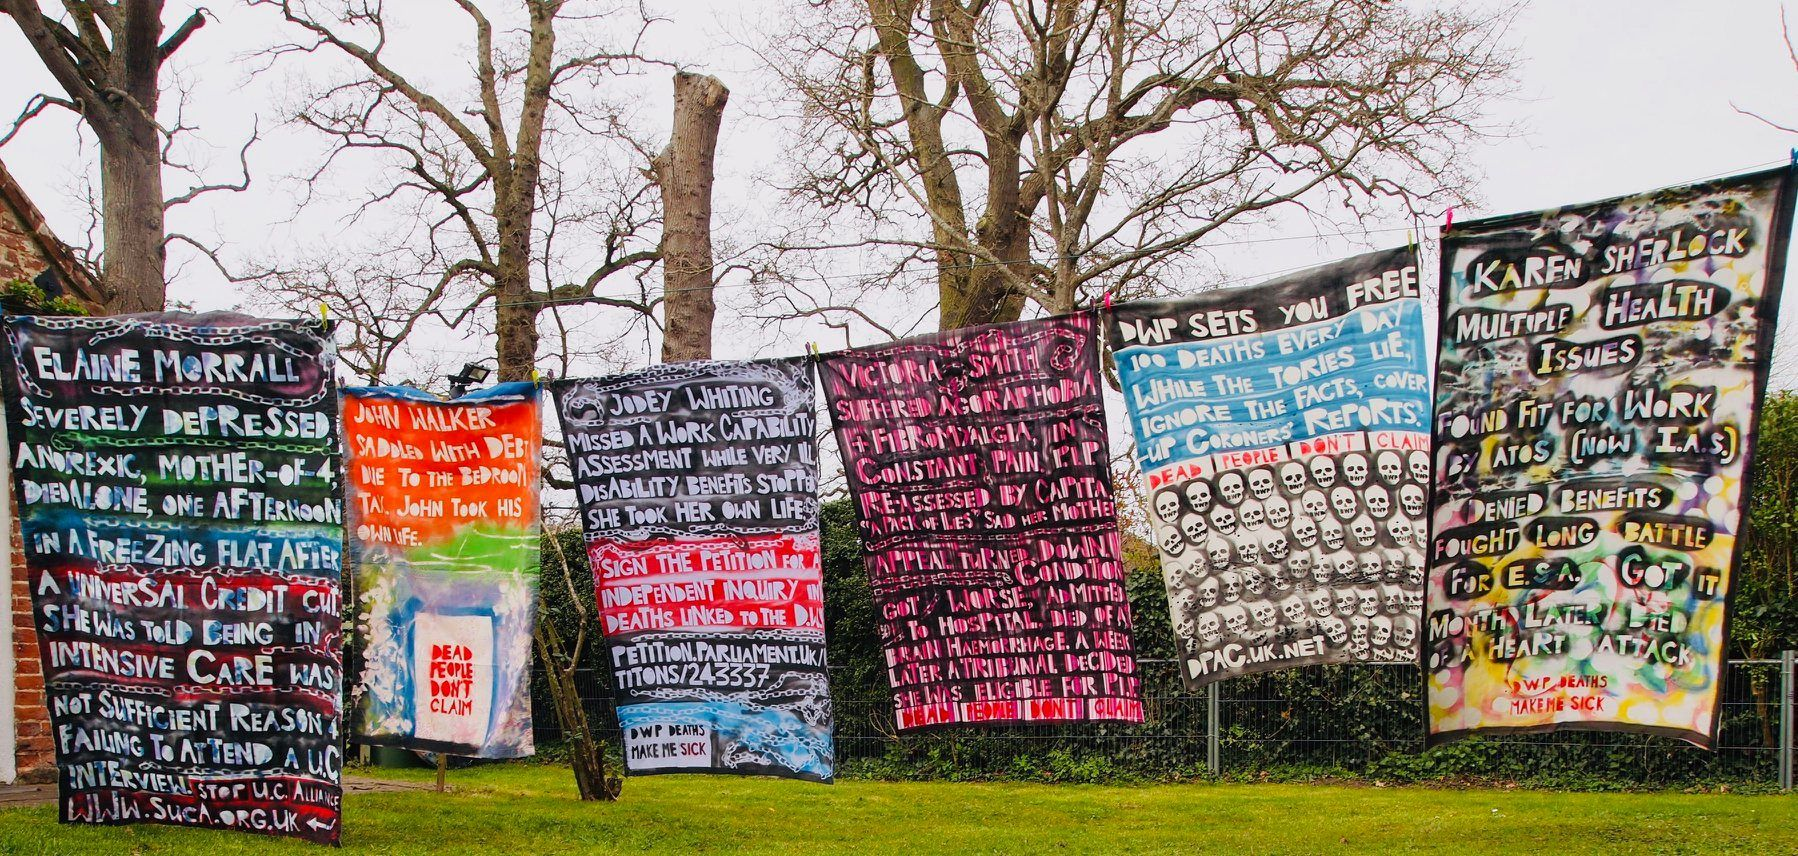 """6 shrouds with painted text hanging in a line outside with trees in the background. They read Elaine Morrall severely depressed, anorexic mother of 4 died alone, one afternoon, in a freezing flat after a Universal Credit cut. Elaine was told being in Intensive Care was not sufficient reason for failing to attend a UC interview. Stop U.C. Alliance www.suca.org.uk John Walker Saddled with debt due to the bedroom tax. John took his own life. 'Dead People Don't Claim.' Jodey Whiting Missed a Work Capability Assessment while very ill. Disability Benefits stopped. She took her own life. Sign the petition for an Independent Inquiry into Deaths linked to the DWP. DWP Deaths Make Me Sick Victoria Smith Suffered agoraphobia + fibromyalgia, in constant pain. PIP re-assessed by Capita. """"A pack of lies,"""" said her mother. Appeal turned down. Condition got worse. admitted to hospital, died of a brain haemorrhage. A week later a Tribunal decided she was eligible for PIP. Dead People Don't Claim DWP SETS YOU FREE 100 Deaths Every Day While The Tories Lie, Ignore the Facts, & Cover-Up Coroners' Reports. Dead People Don't Claim. DPAC.UK.NET Karen Sherlock Multiple health issues. Found Fit For Work by Atos (now I.A.S.) Denied benefits. Fought long battle for E.S.A.. Got it. Month later died of a heart attack."""